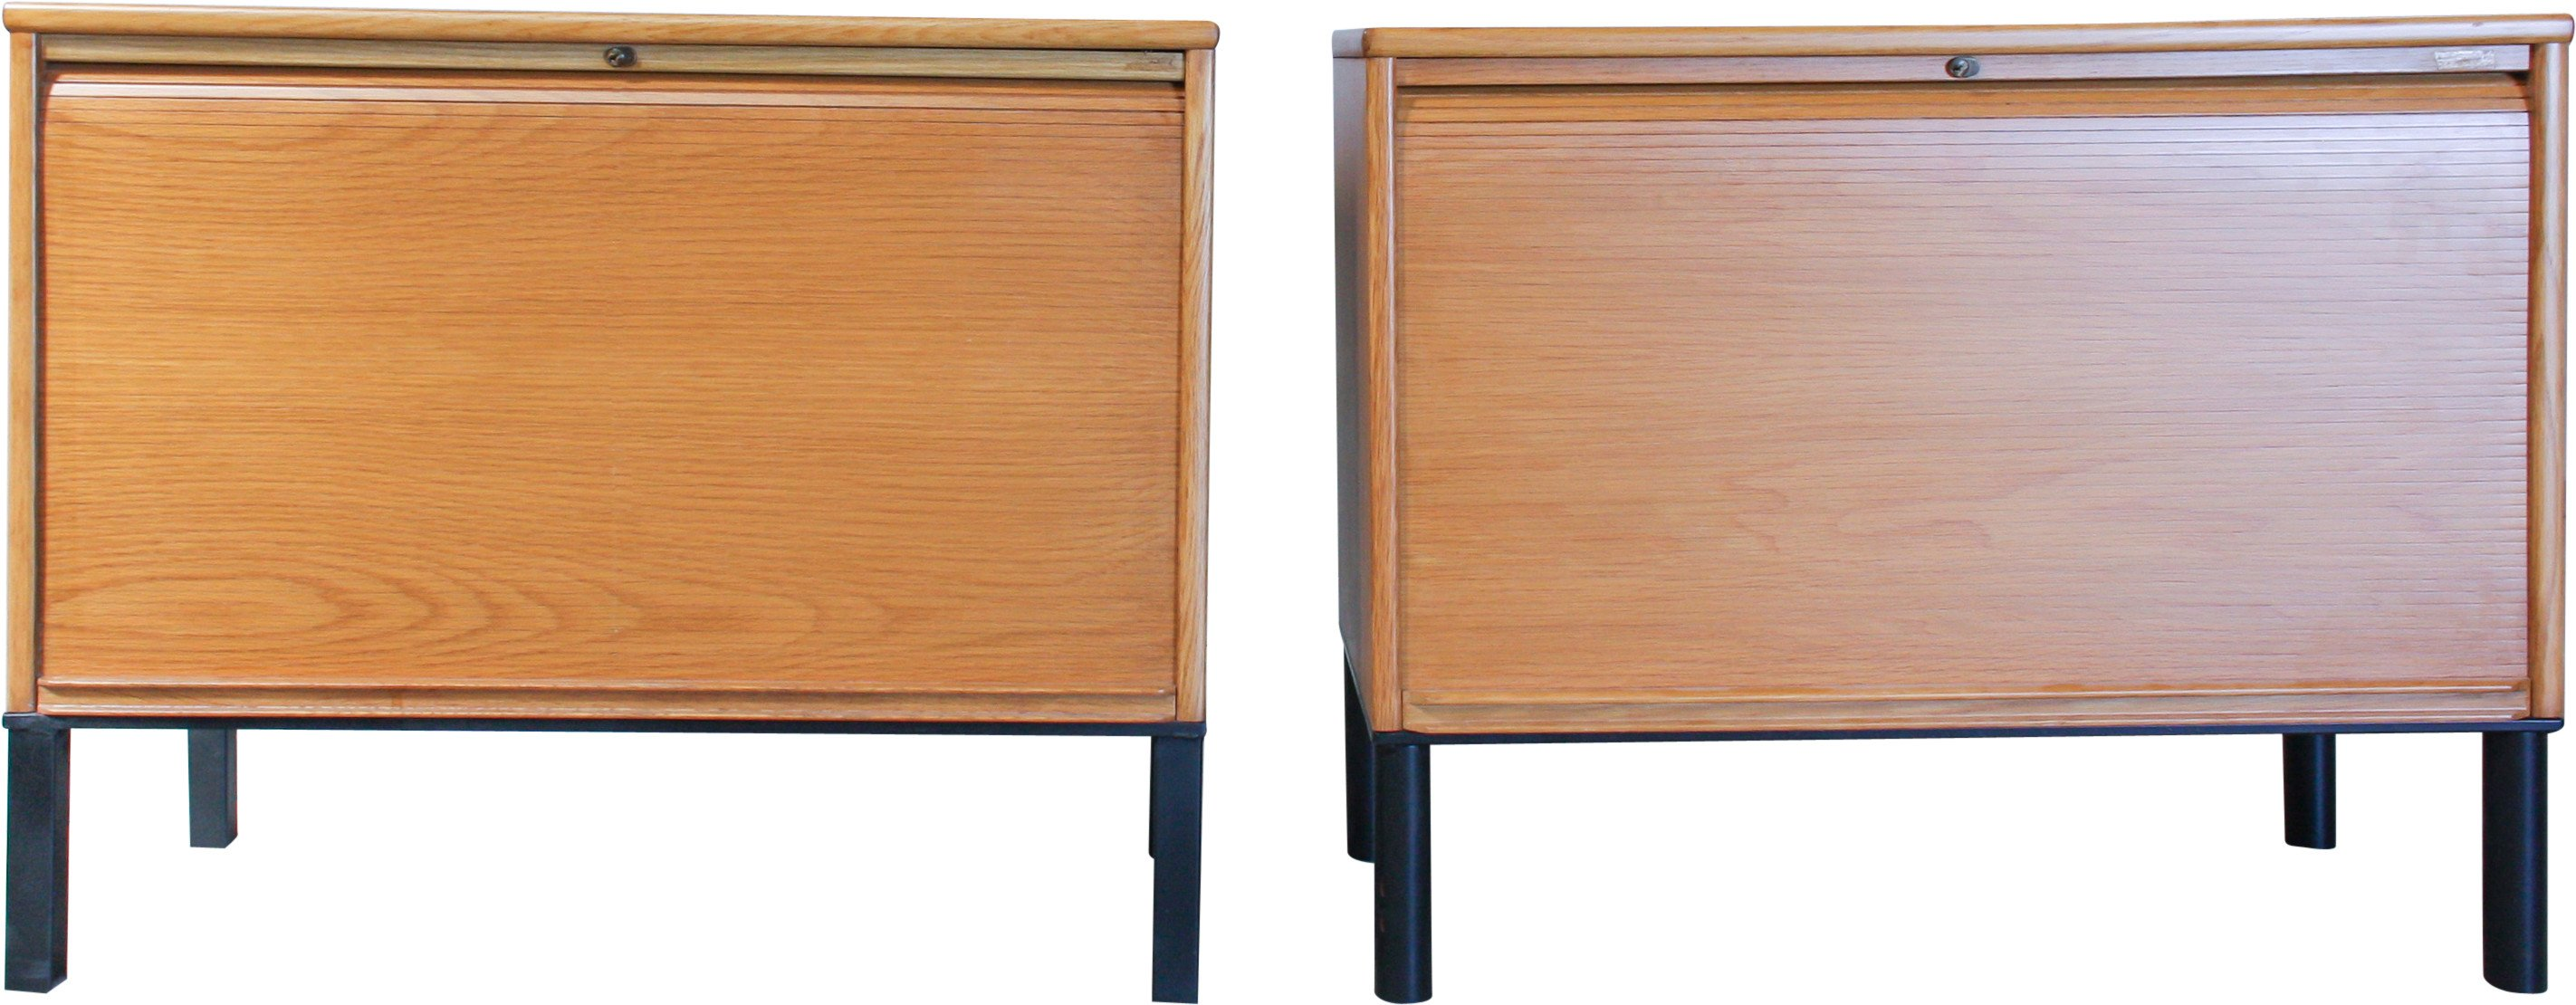 Pair of Oak Cabinets, Great Britain, 1970s